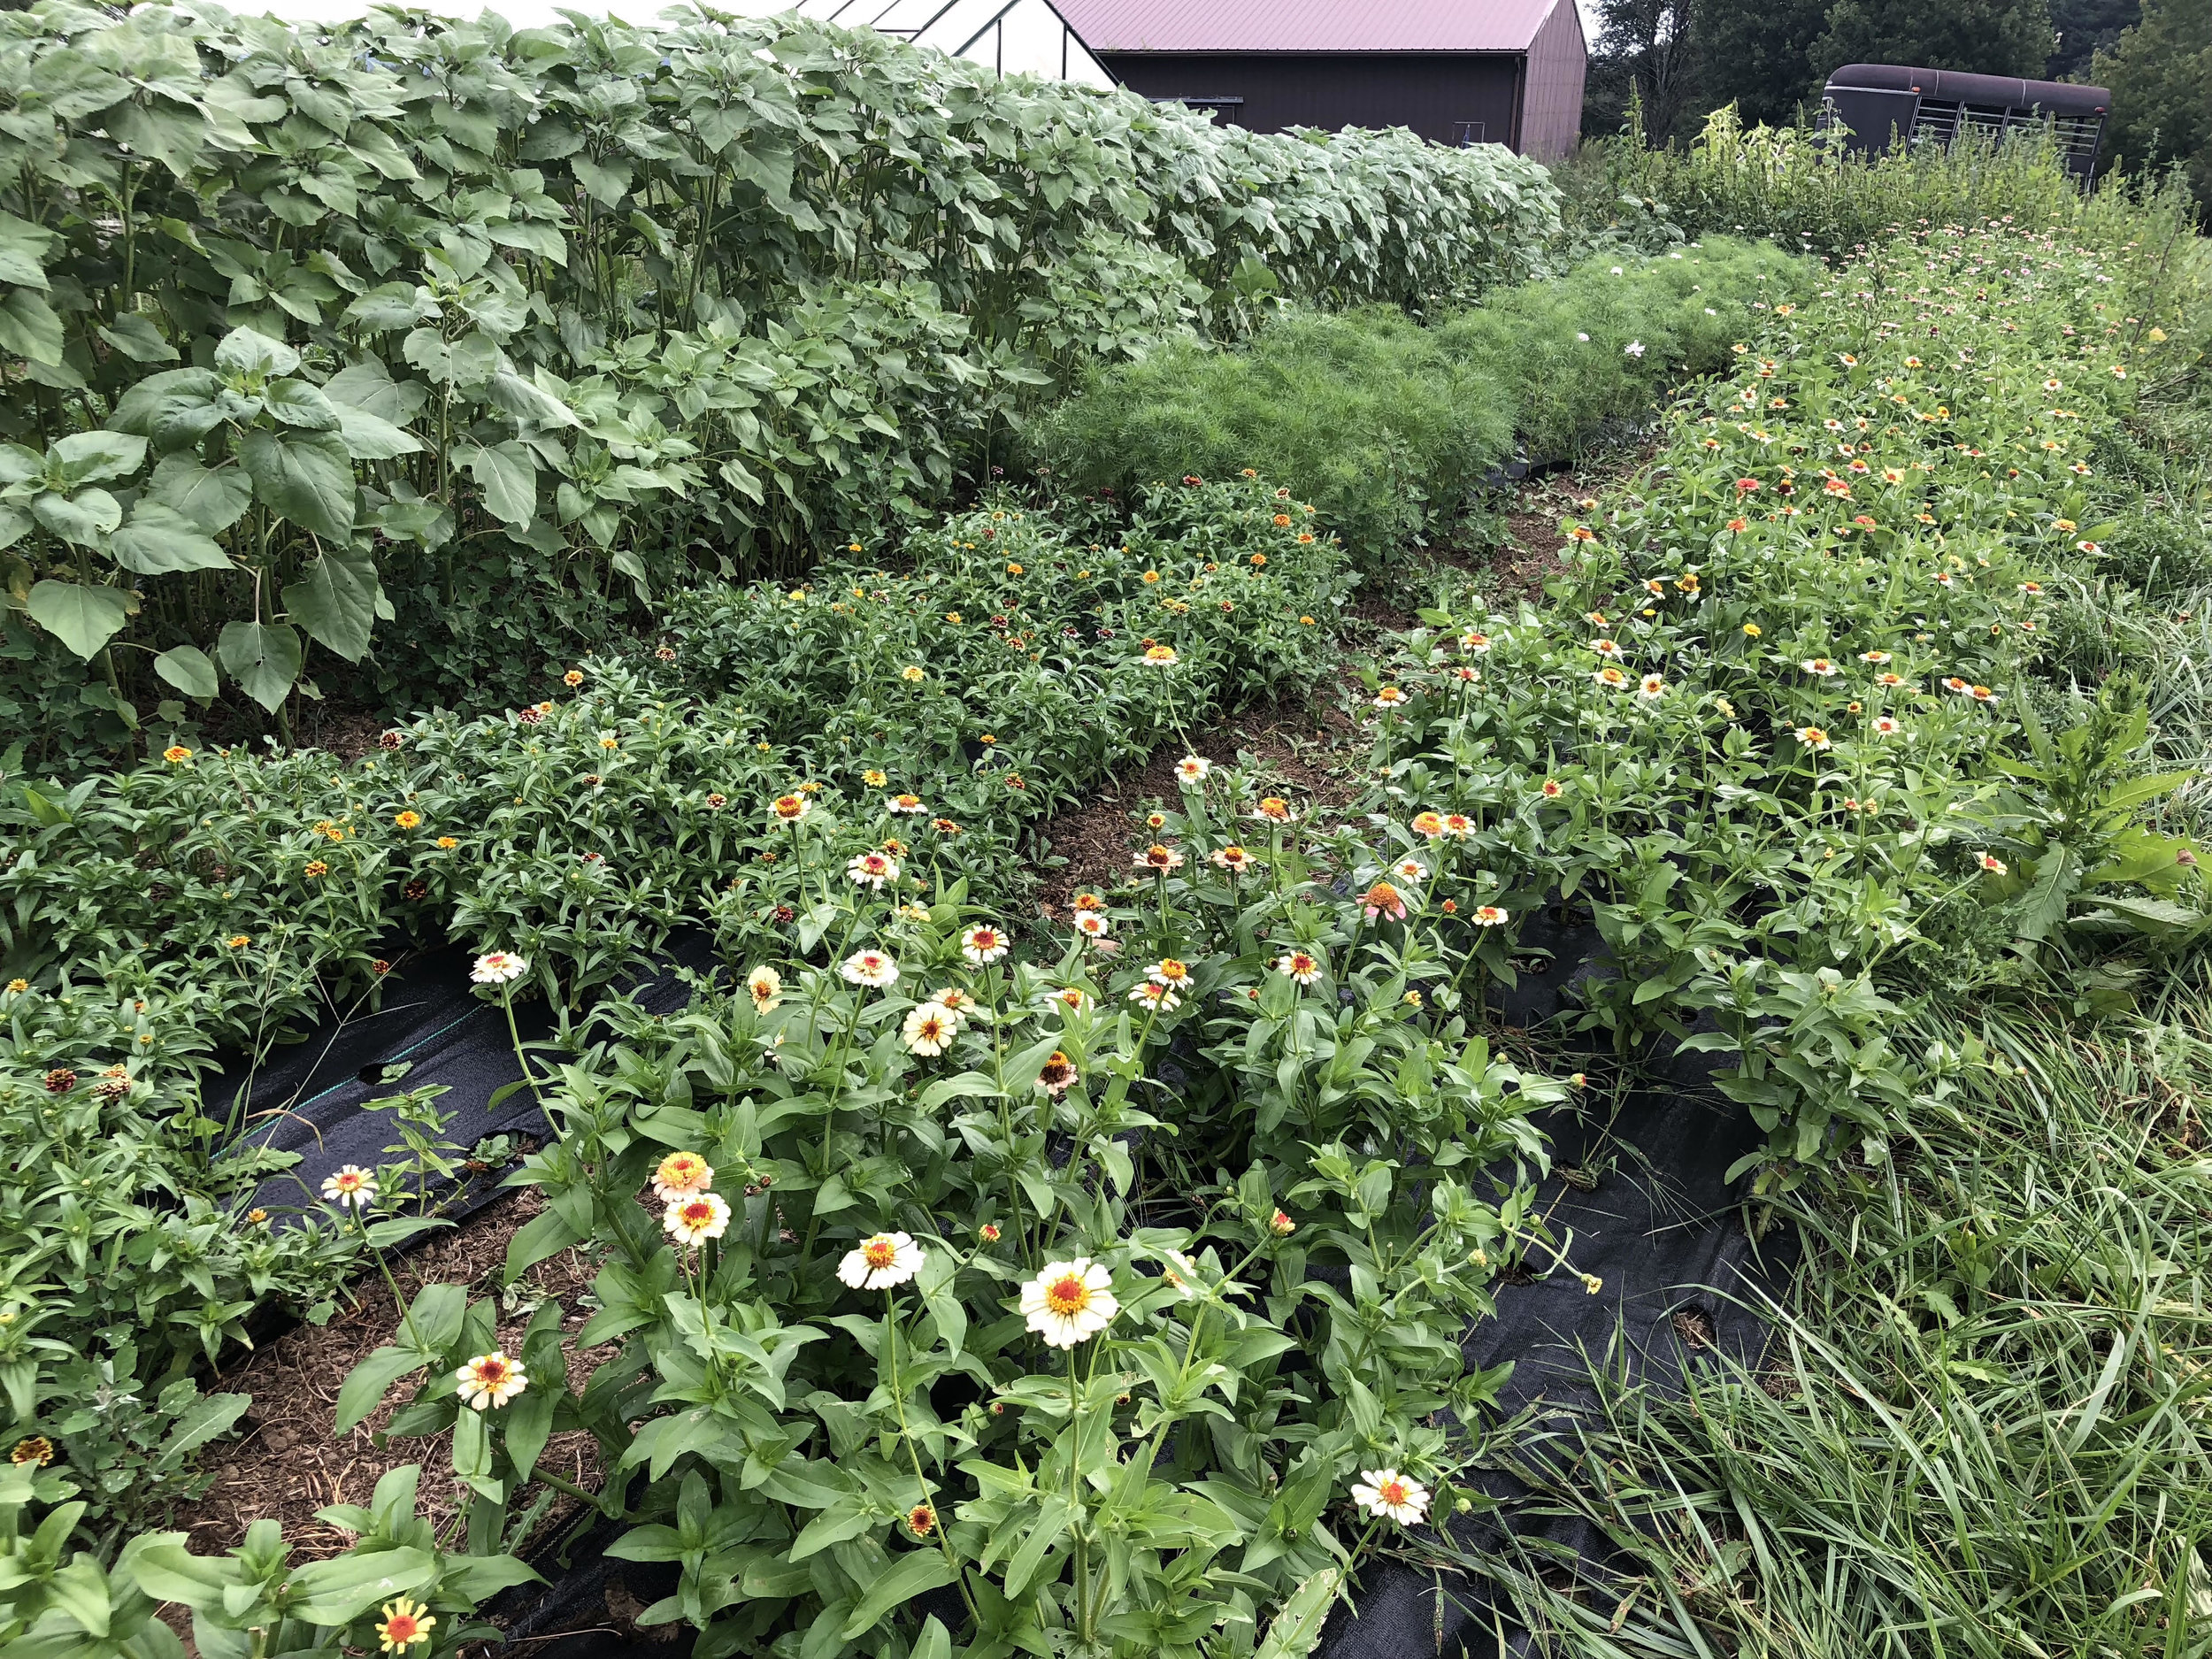 Our 'late-crop' garden of zinnias, sunflowers, cosmos, and the amaranth and scabiosa behind me.